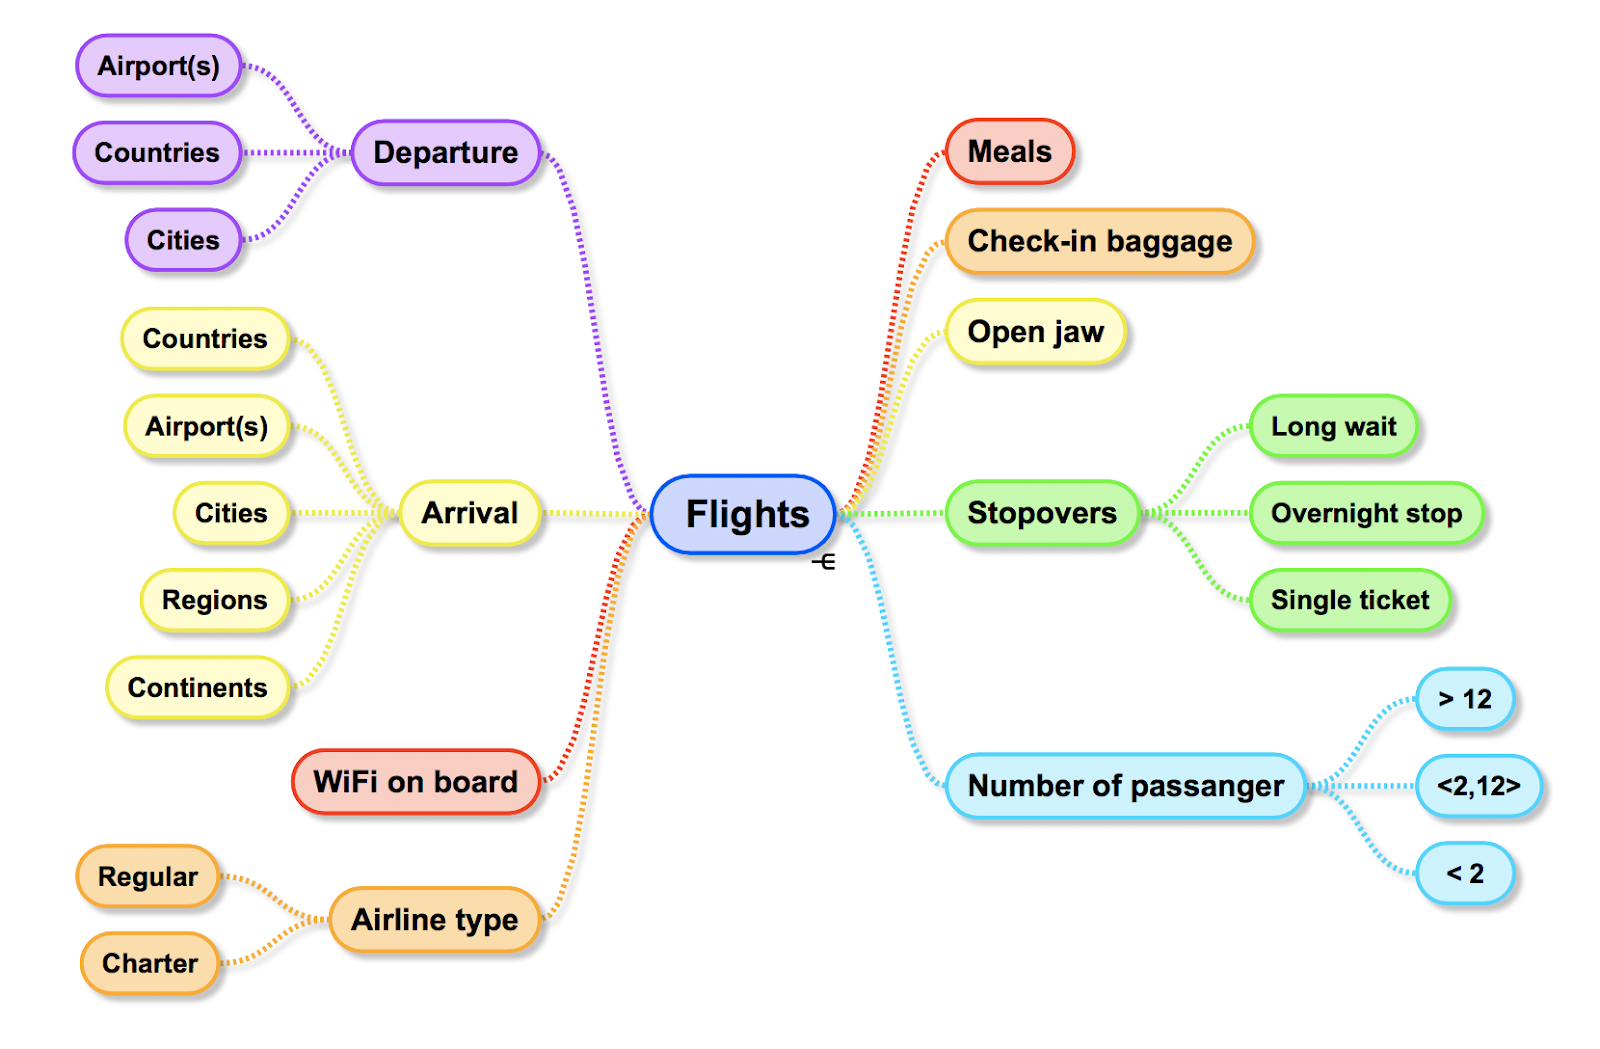 Flights intent with entities